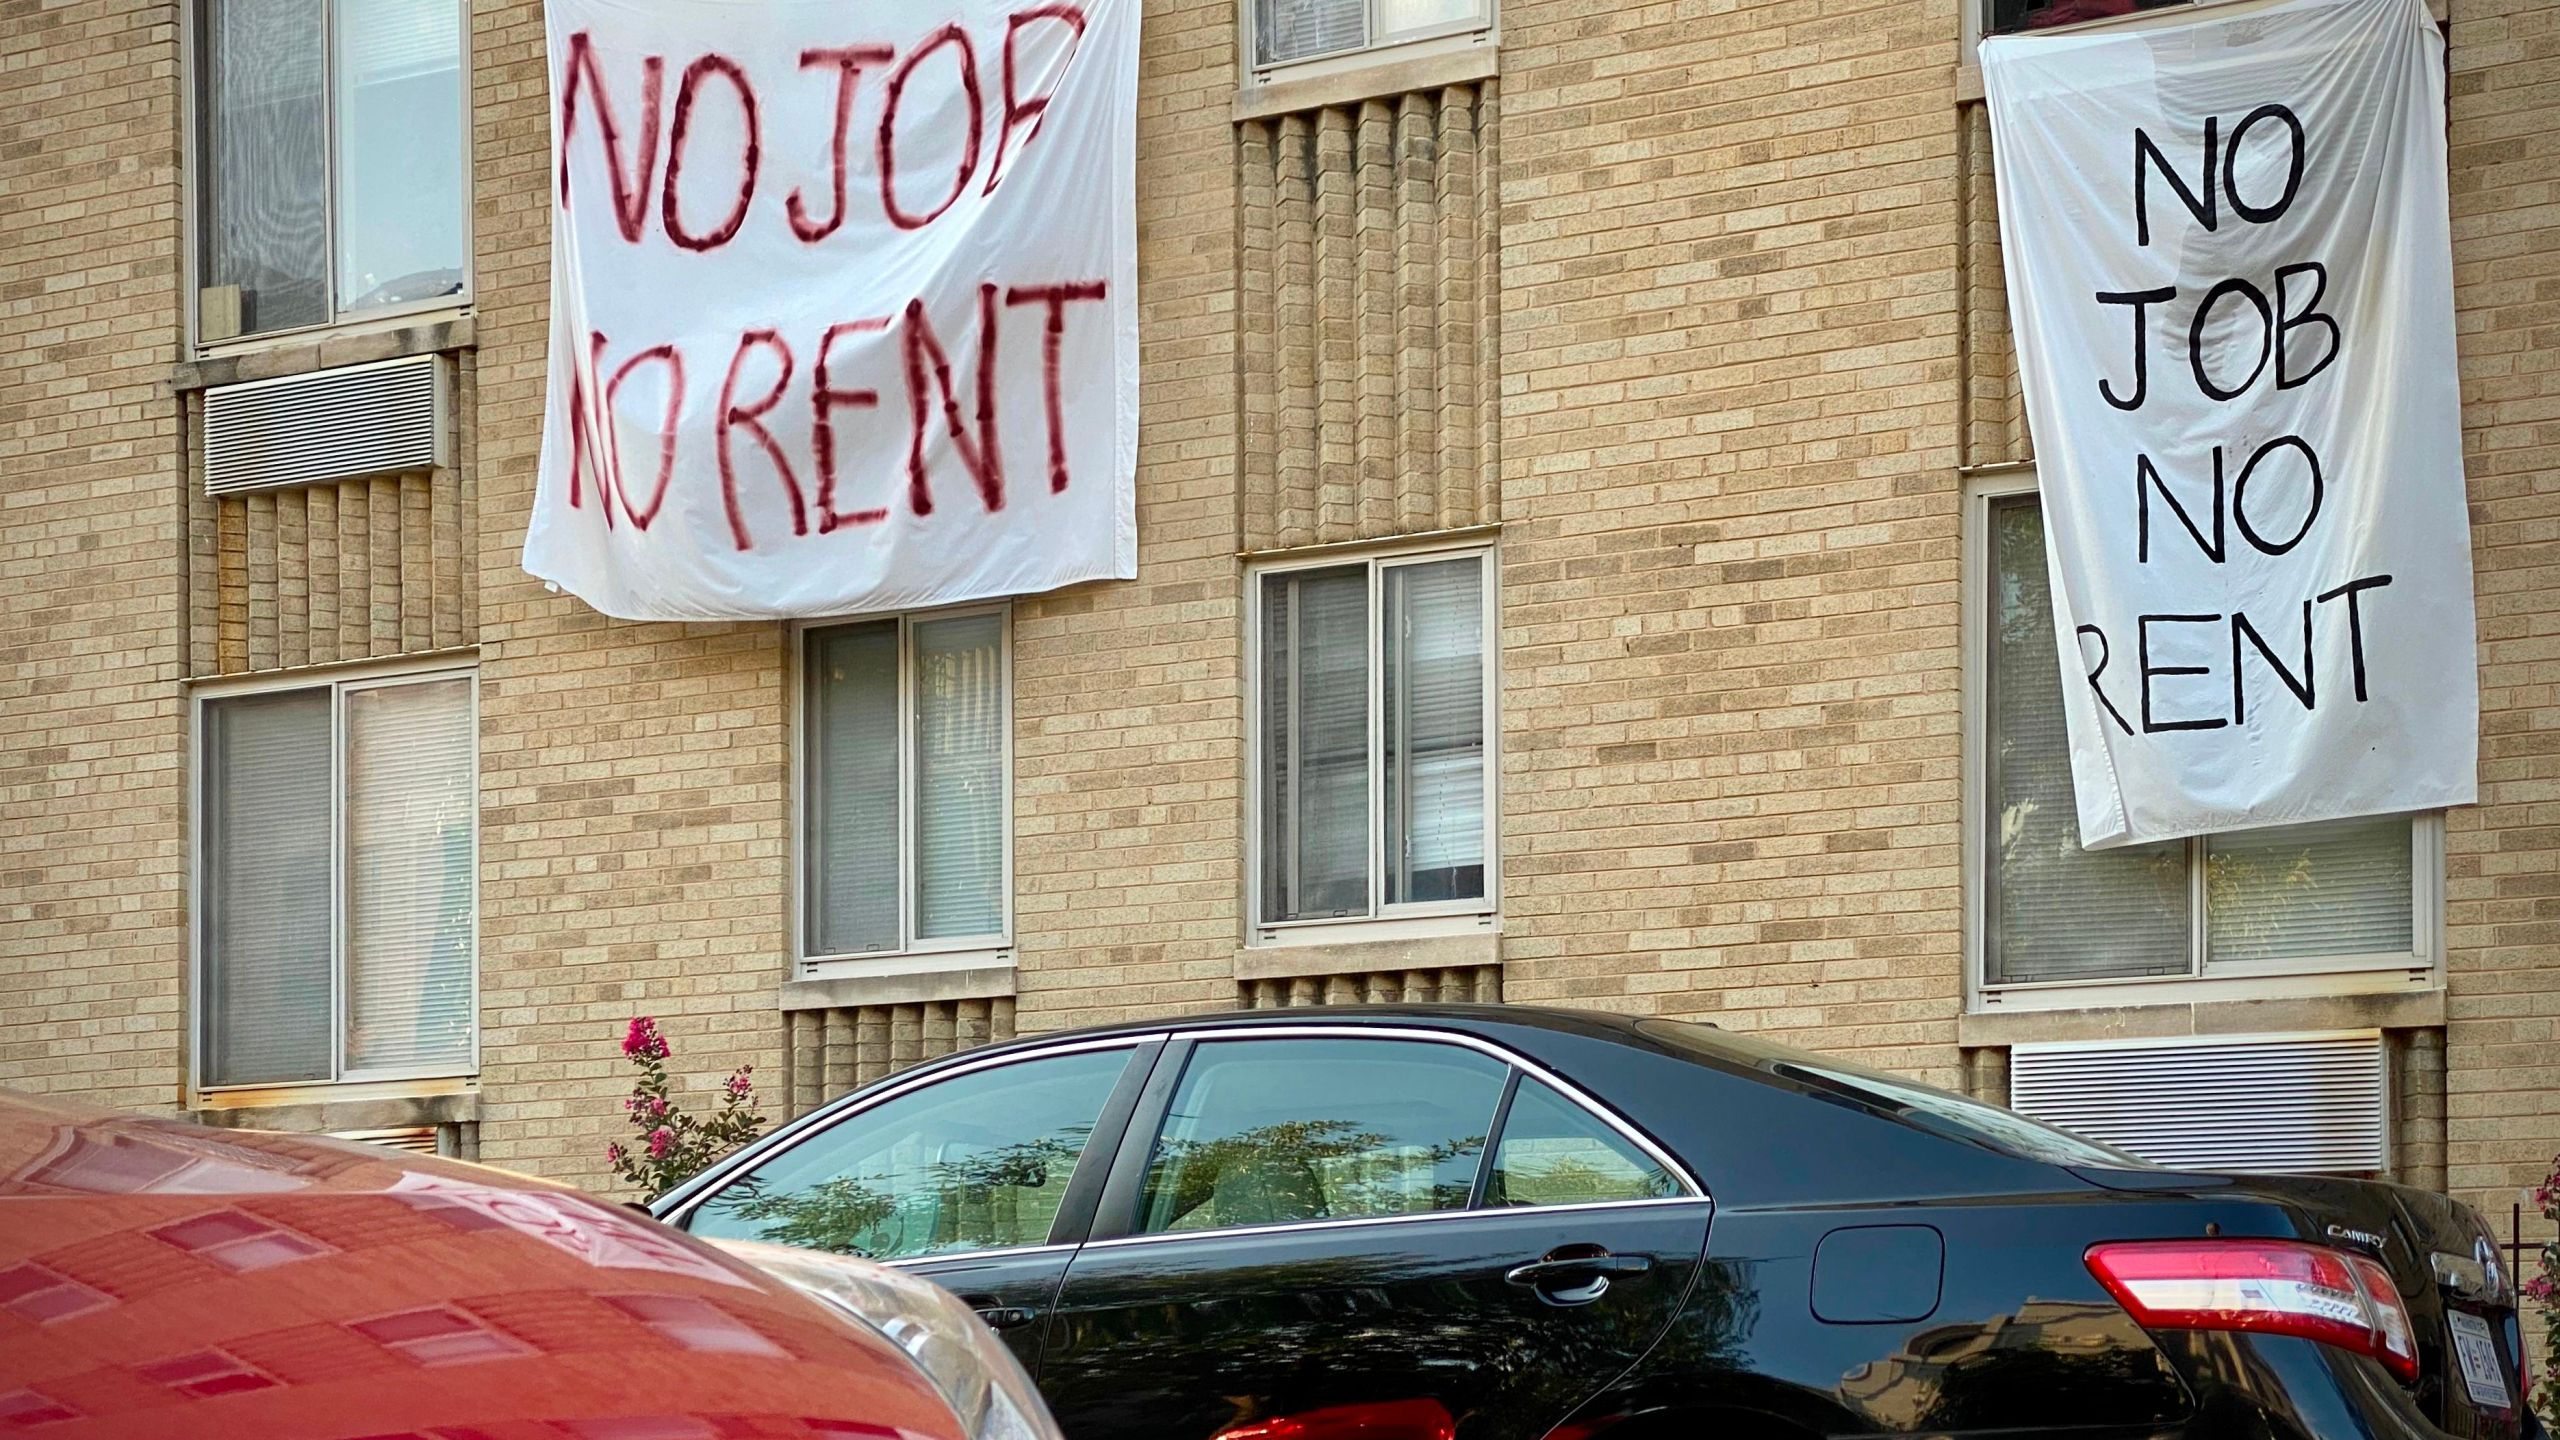 Banners against renters eviction reading no job, no rent is displayed on a controlled rent building in Washington, DC on August 9, 2020. (ERIC BARADAT/AFP via Getty Images)